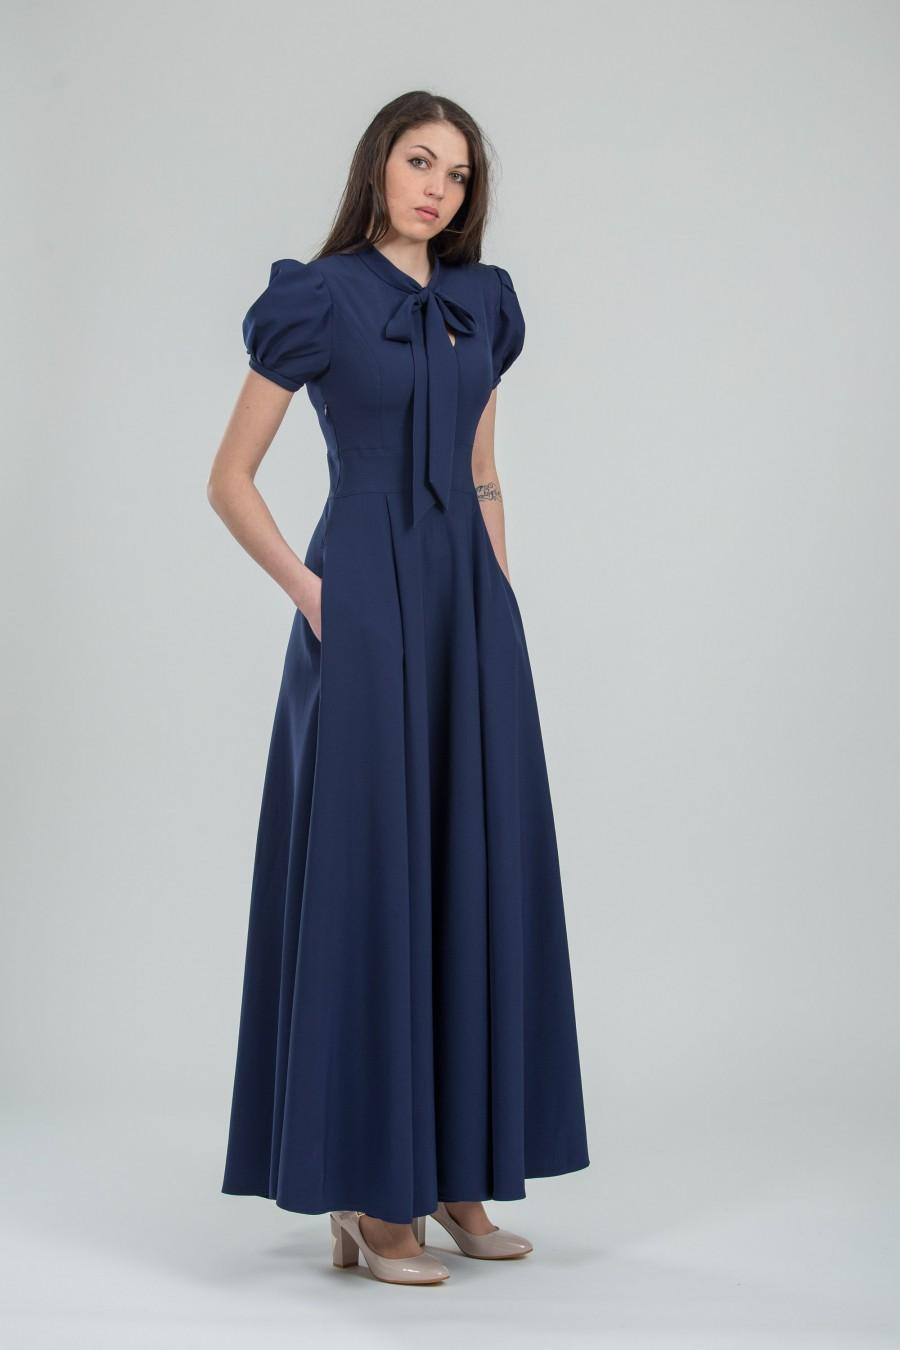 Wedding - Chic navy formal gown Long blue bridesmaid dress Evening outfits for women Special occasion clothing – 50+ colors